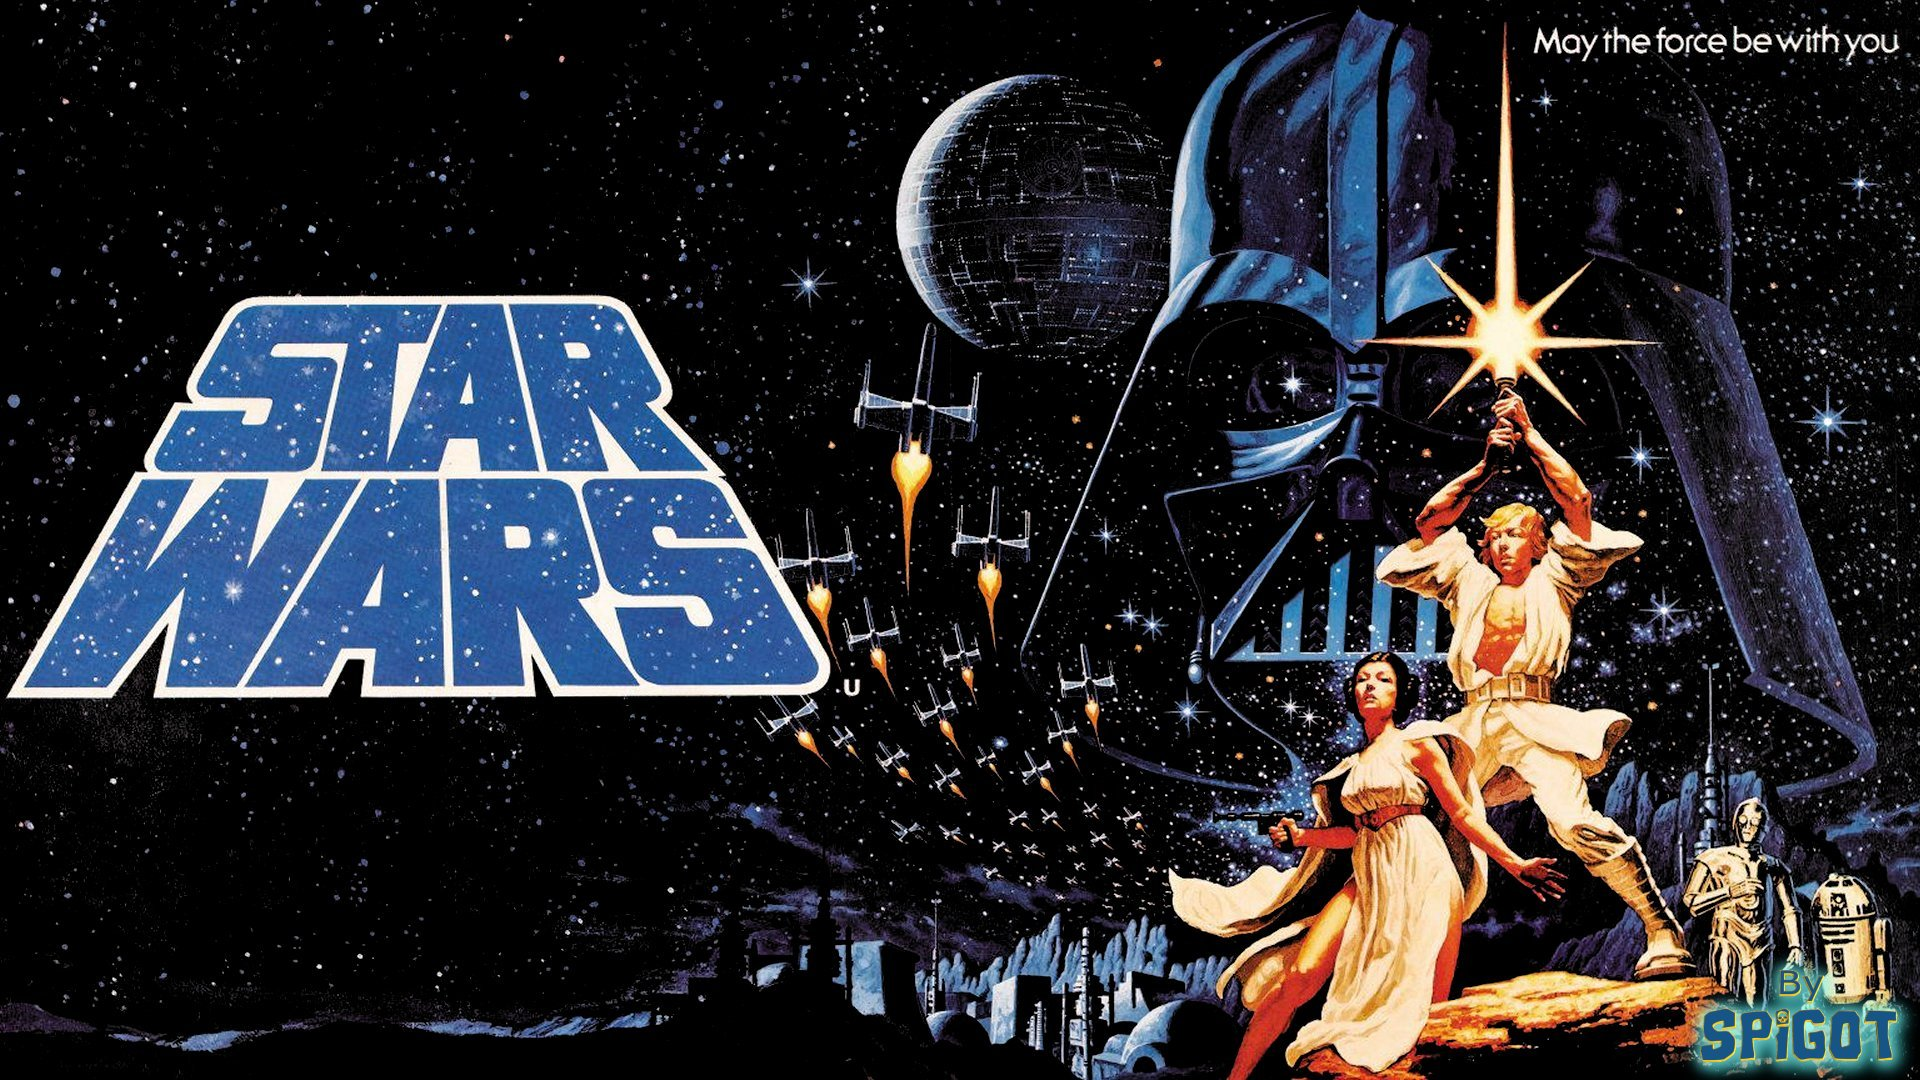 Star wars wallpaper desktop theme under 1920x1080